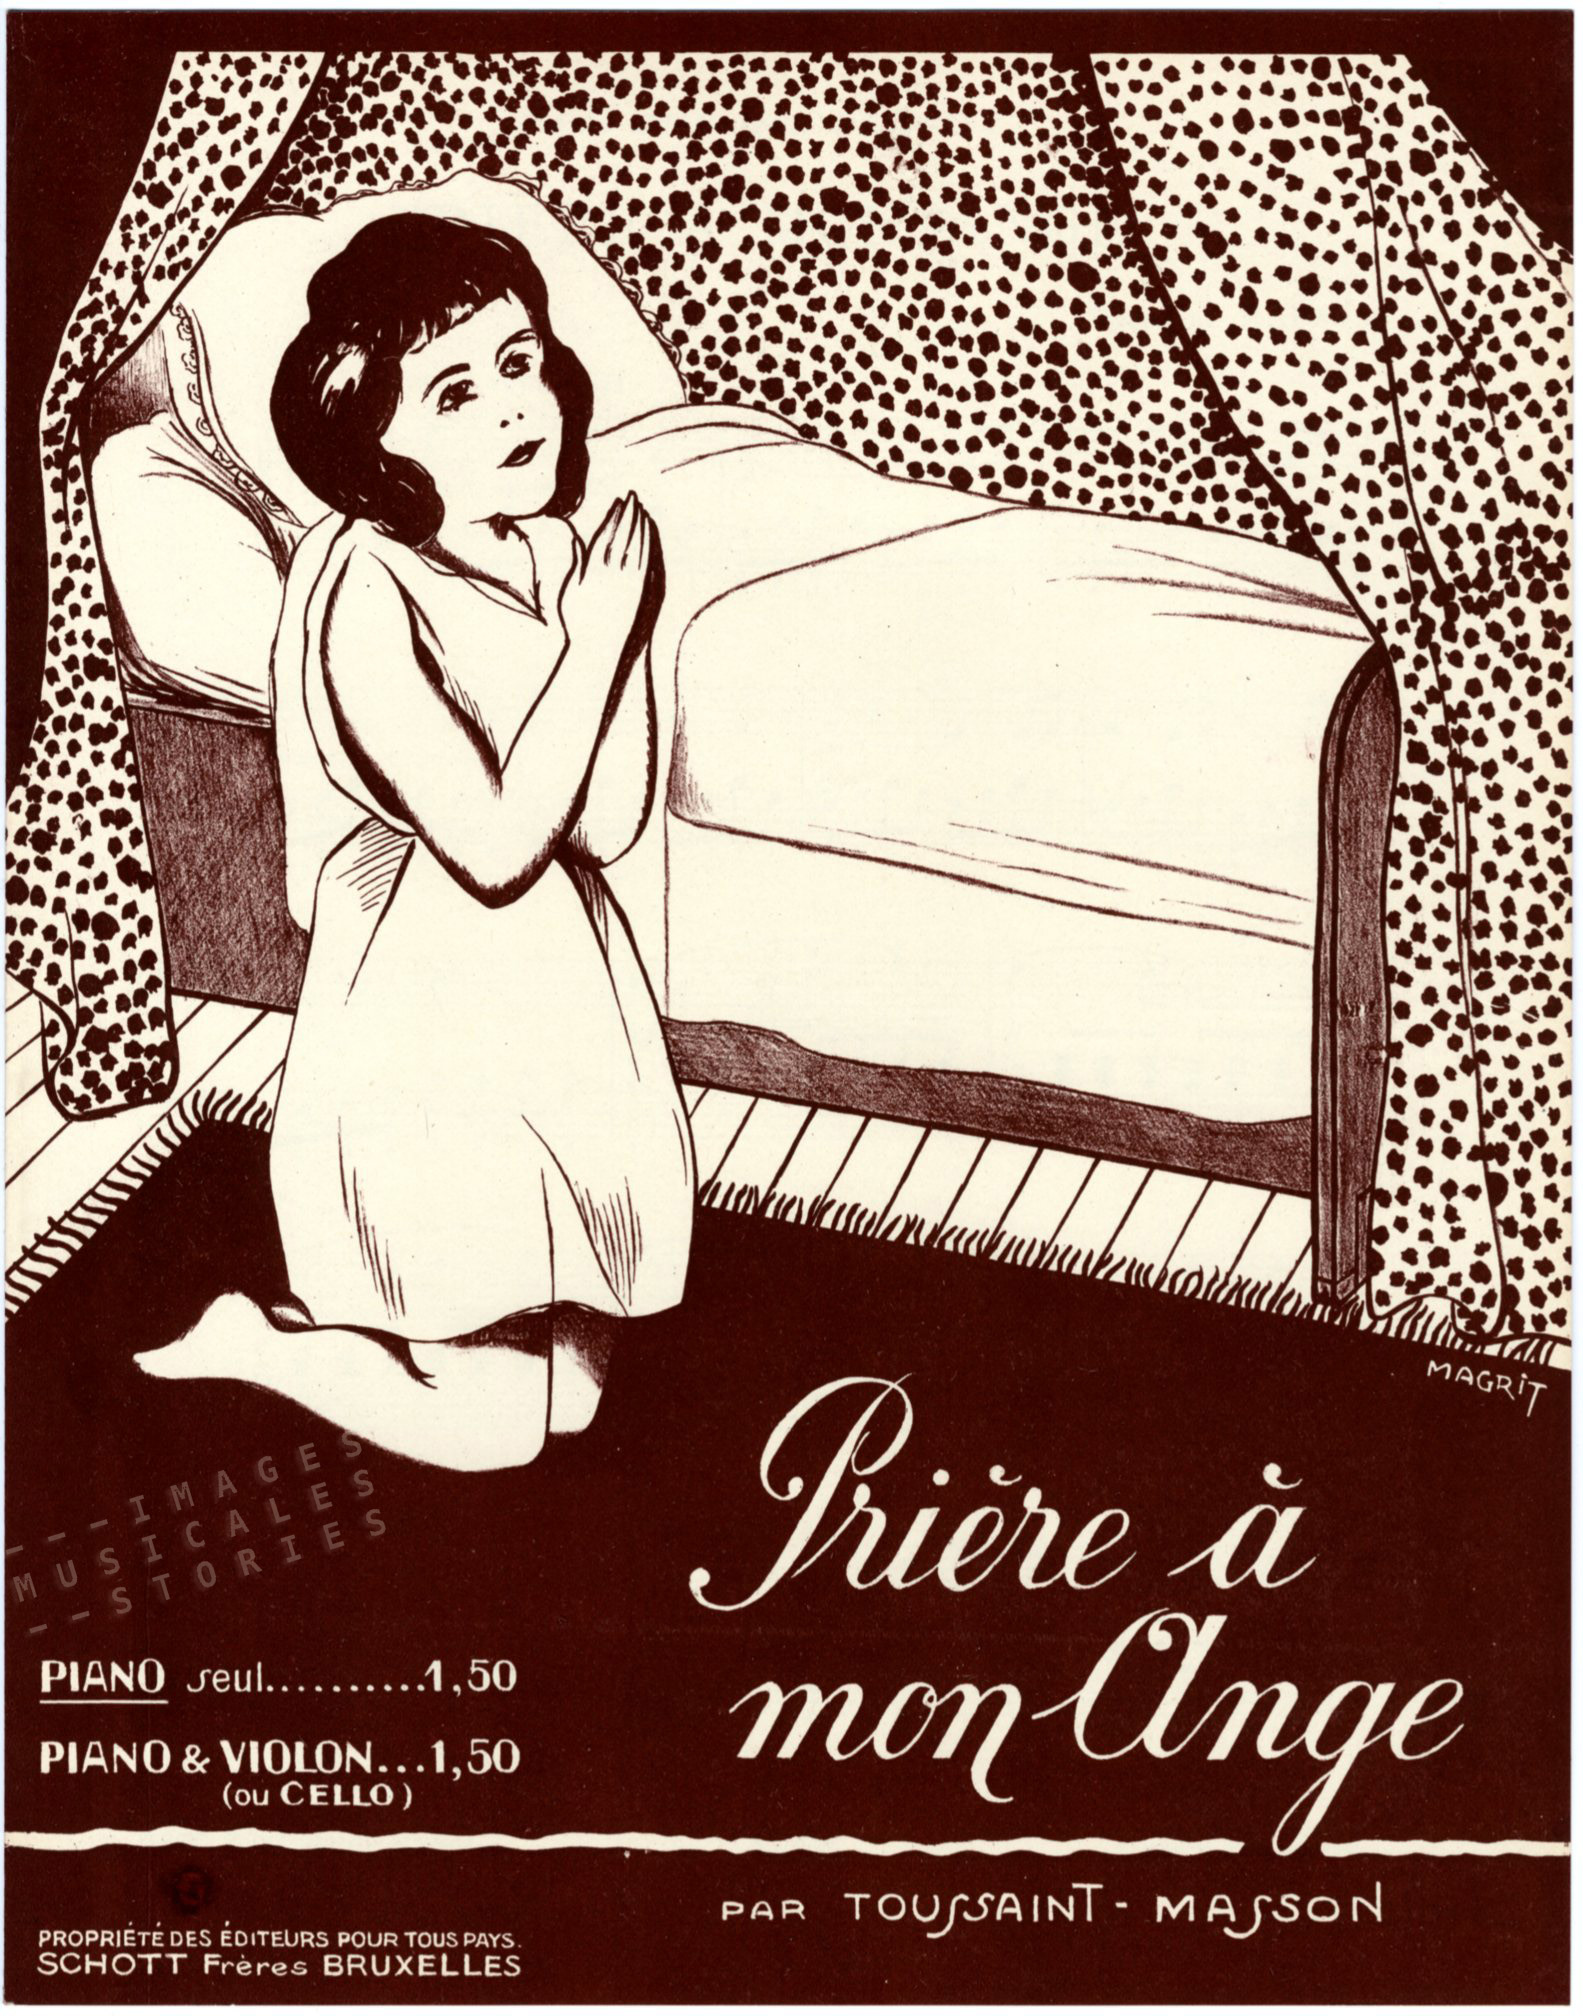 Sheet music cover illustrated by René Magritte: 'Prière à mon ante' by Toussain Masson (1924)